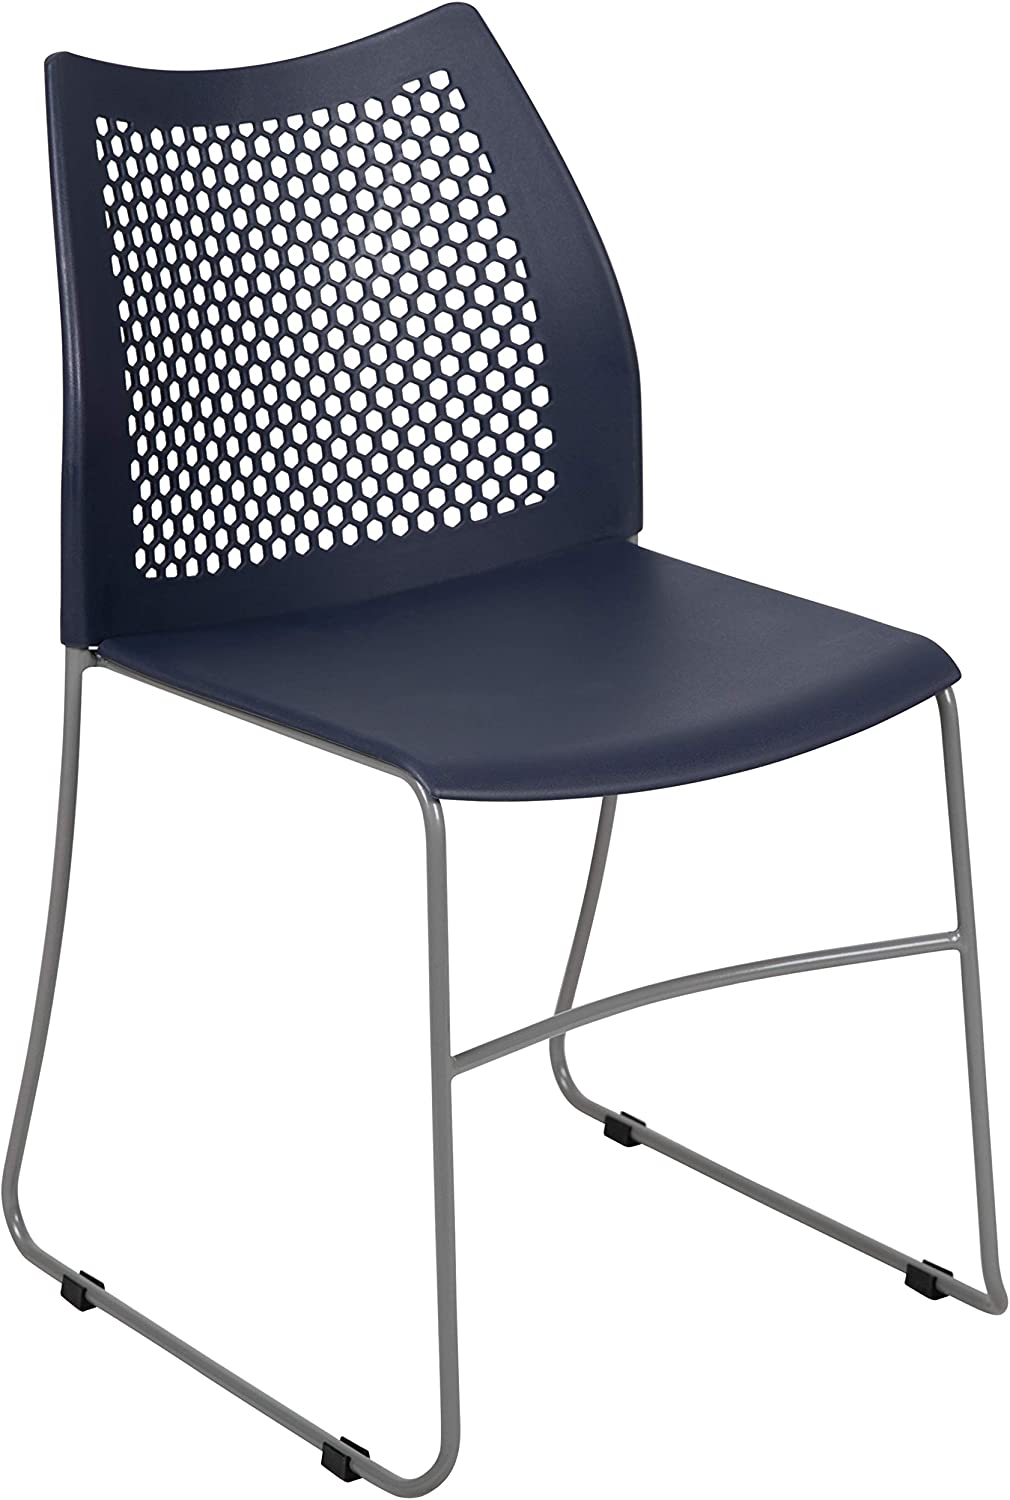 Flash Furniture HERCULES Series 661 lb. Capacity Navy Stack Chair with Air-Vent Back and Gray Powder Coated Sled Base